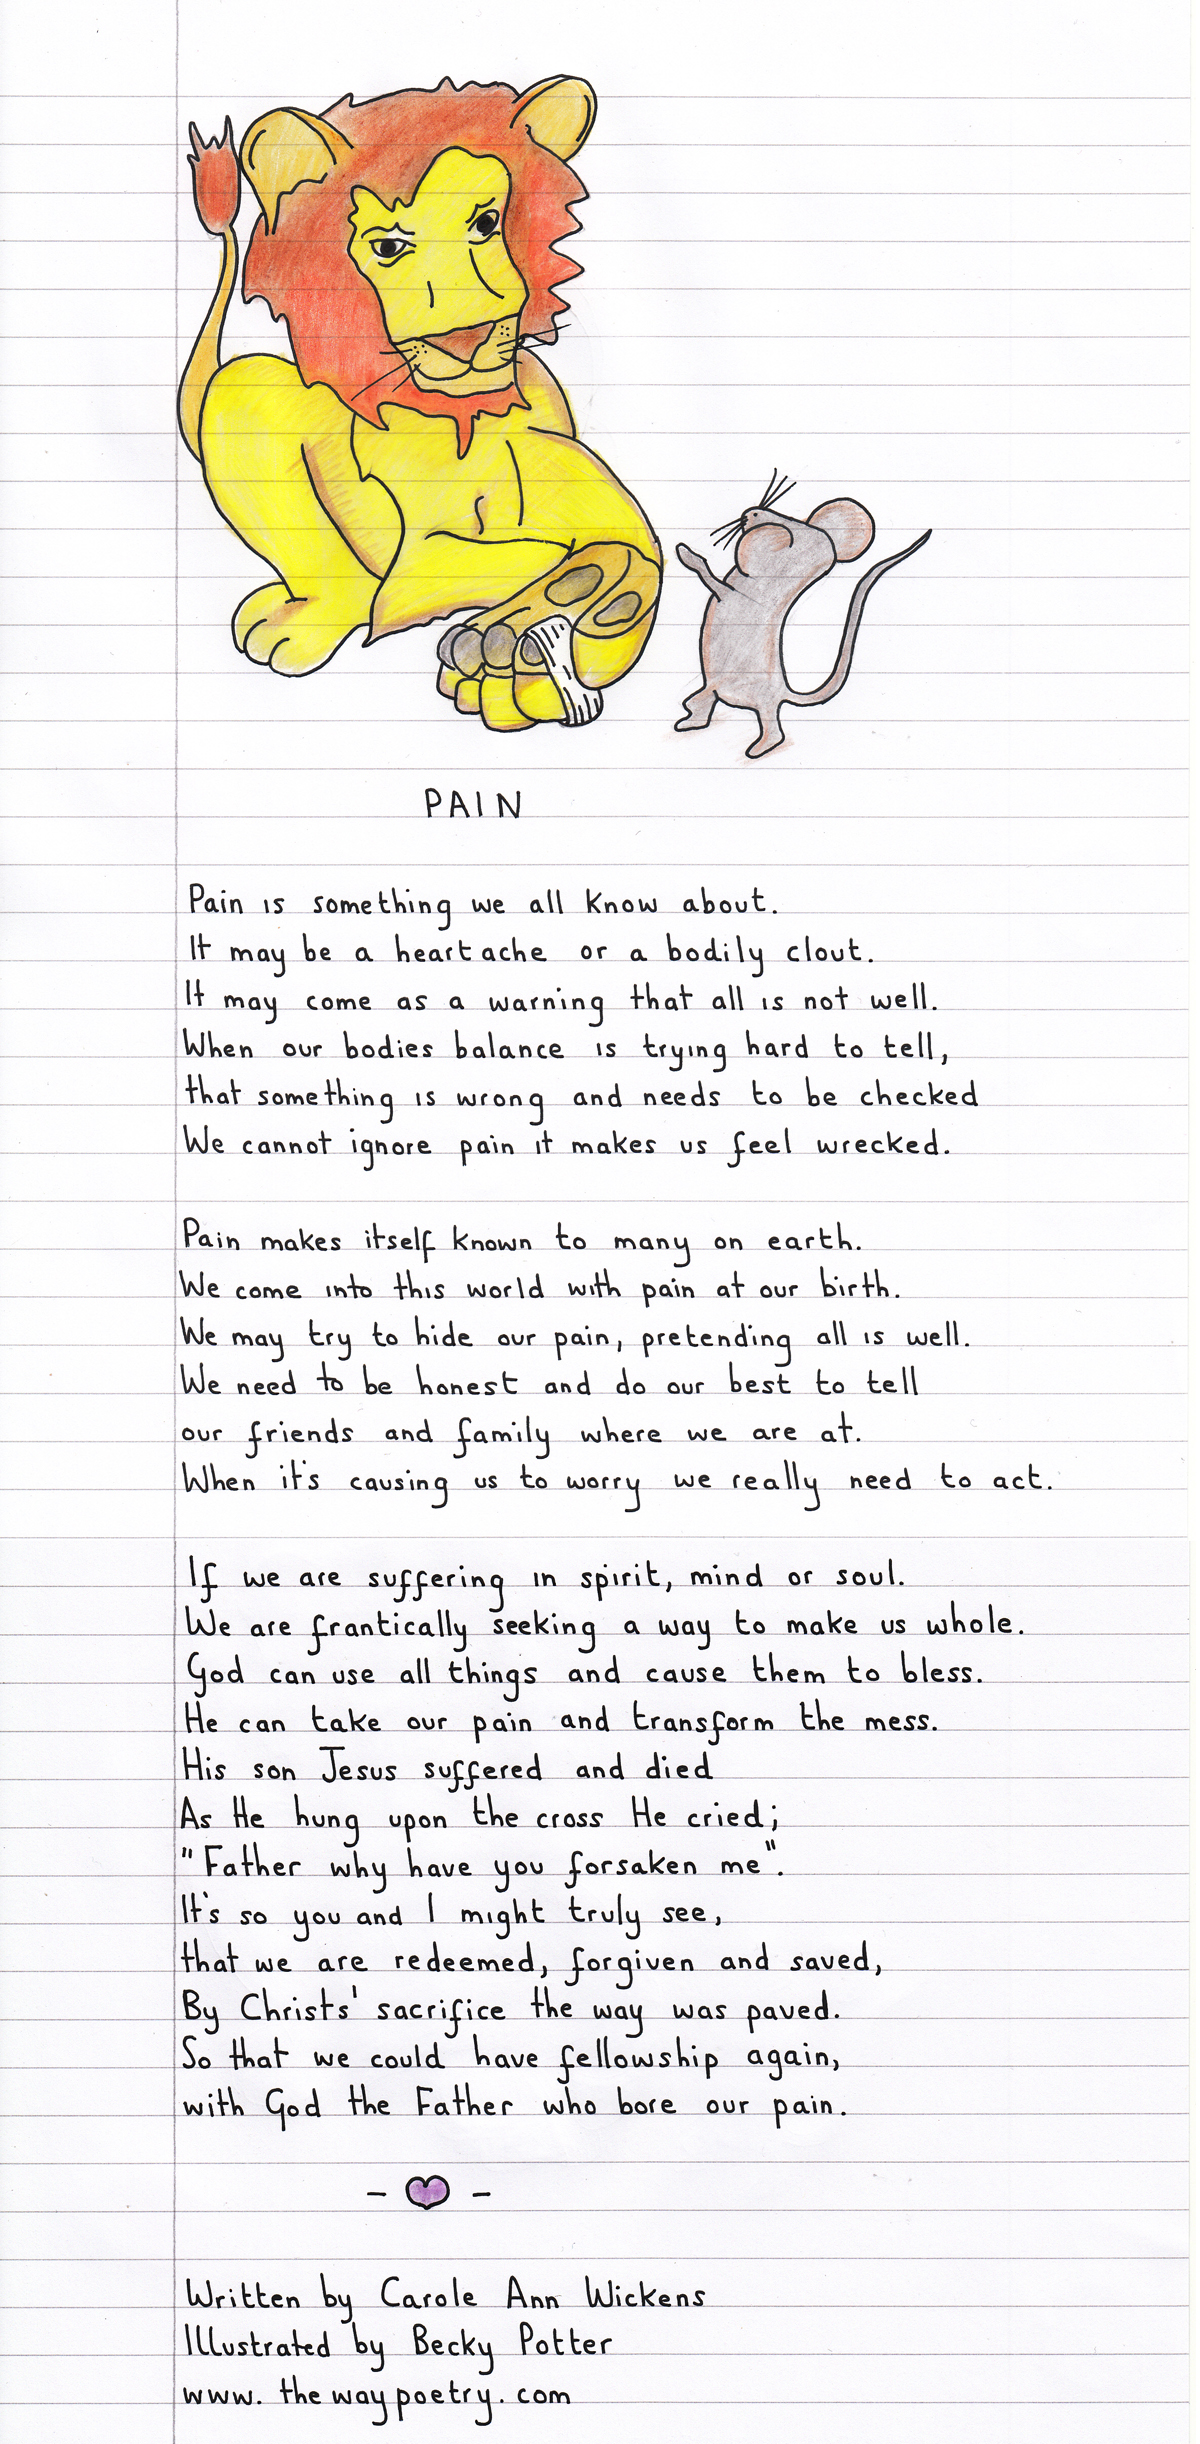 Pain by Carole AnnWickens